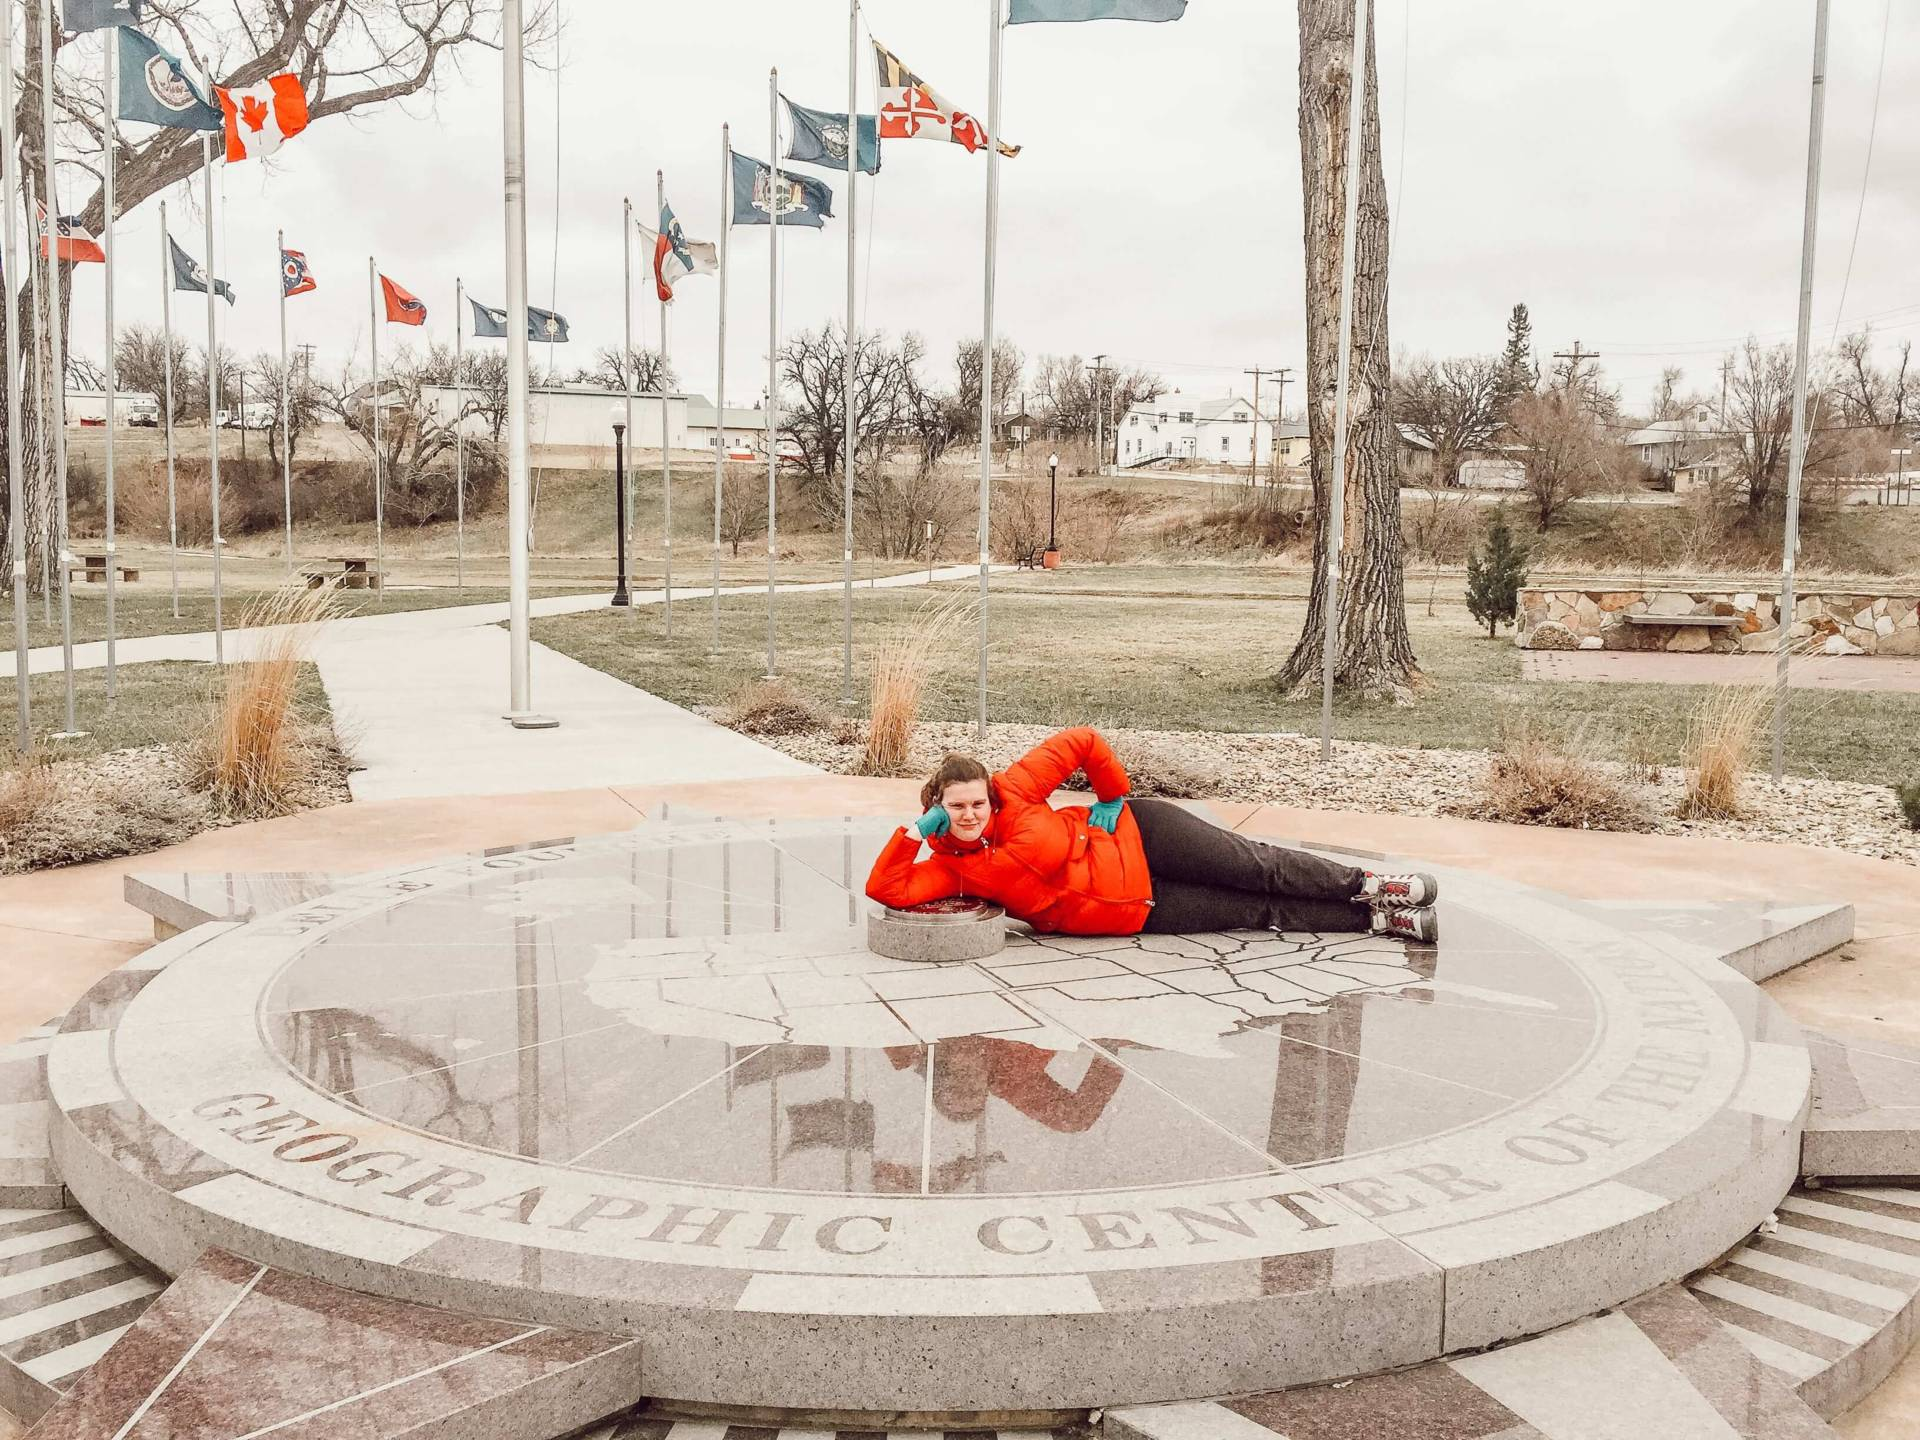 Belle Fourche South Dakota: The Geographic Center of the United States